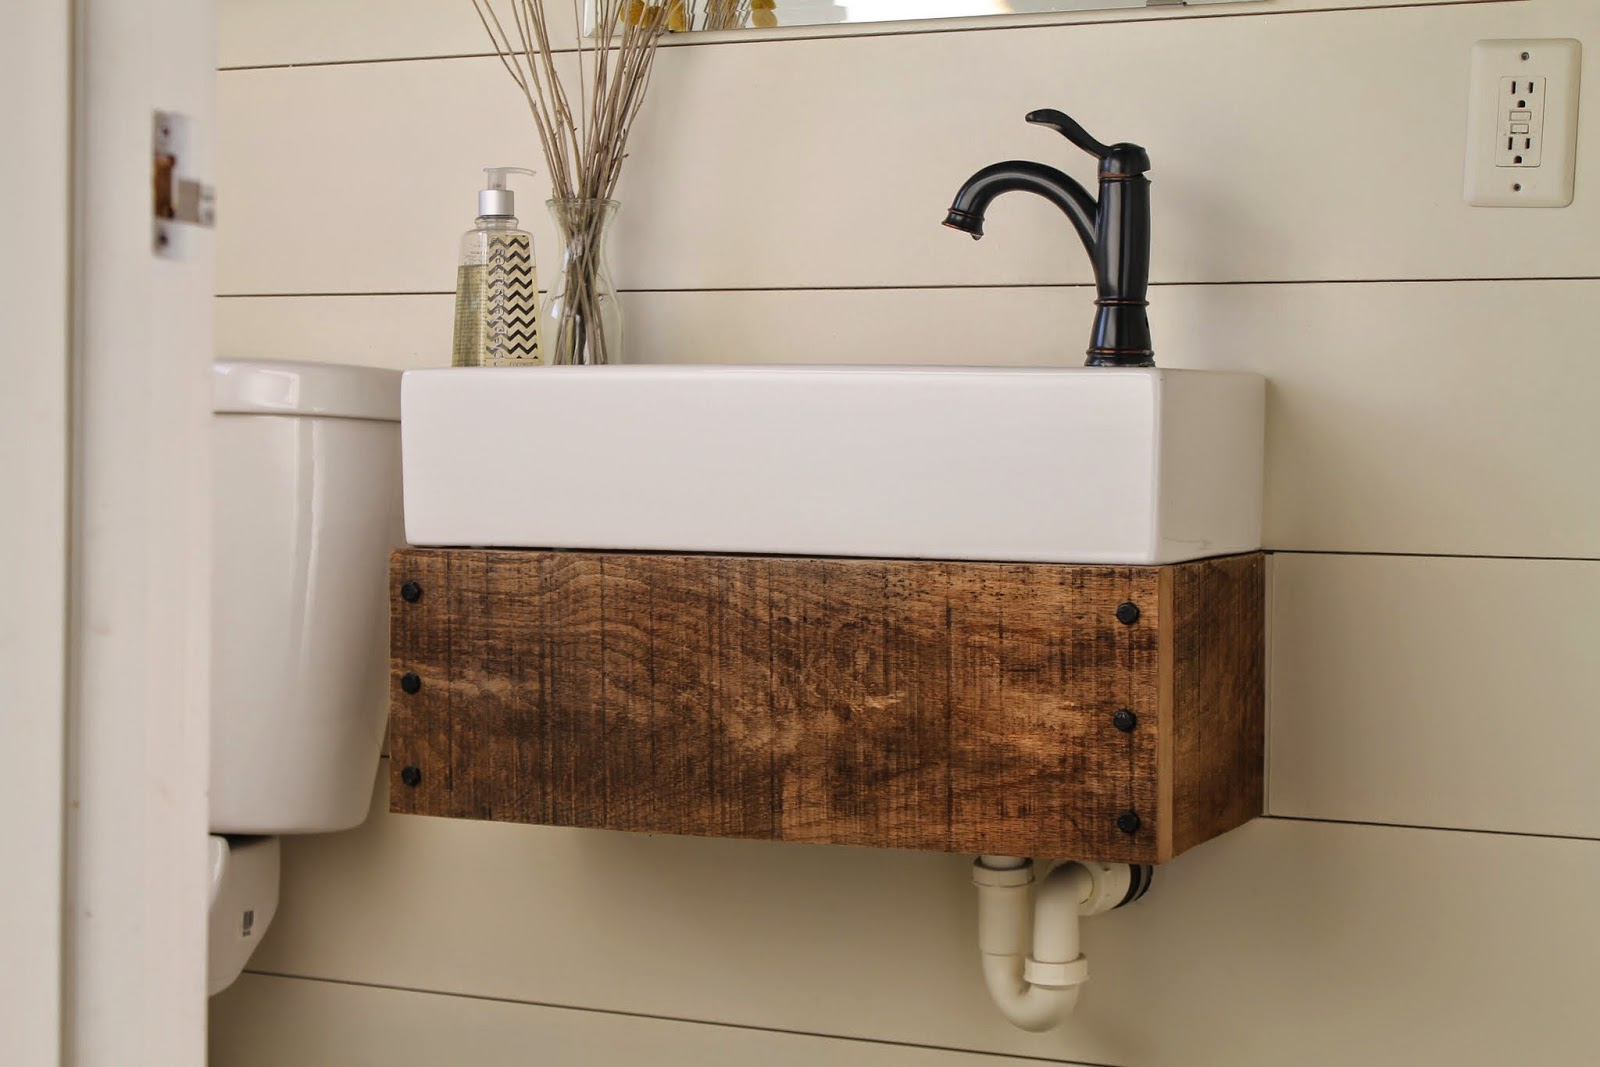 Awesome diy floating reclaimed wood vanity with IKEA sink Girl Meets Carpenter featured on Remodelaholic